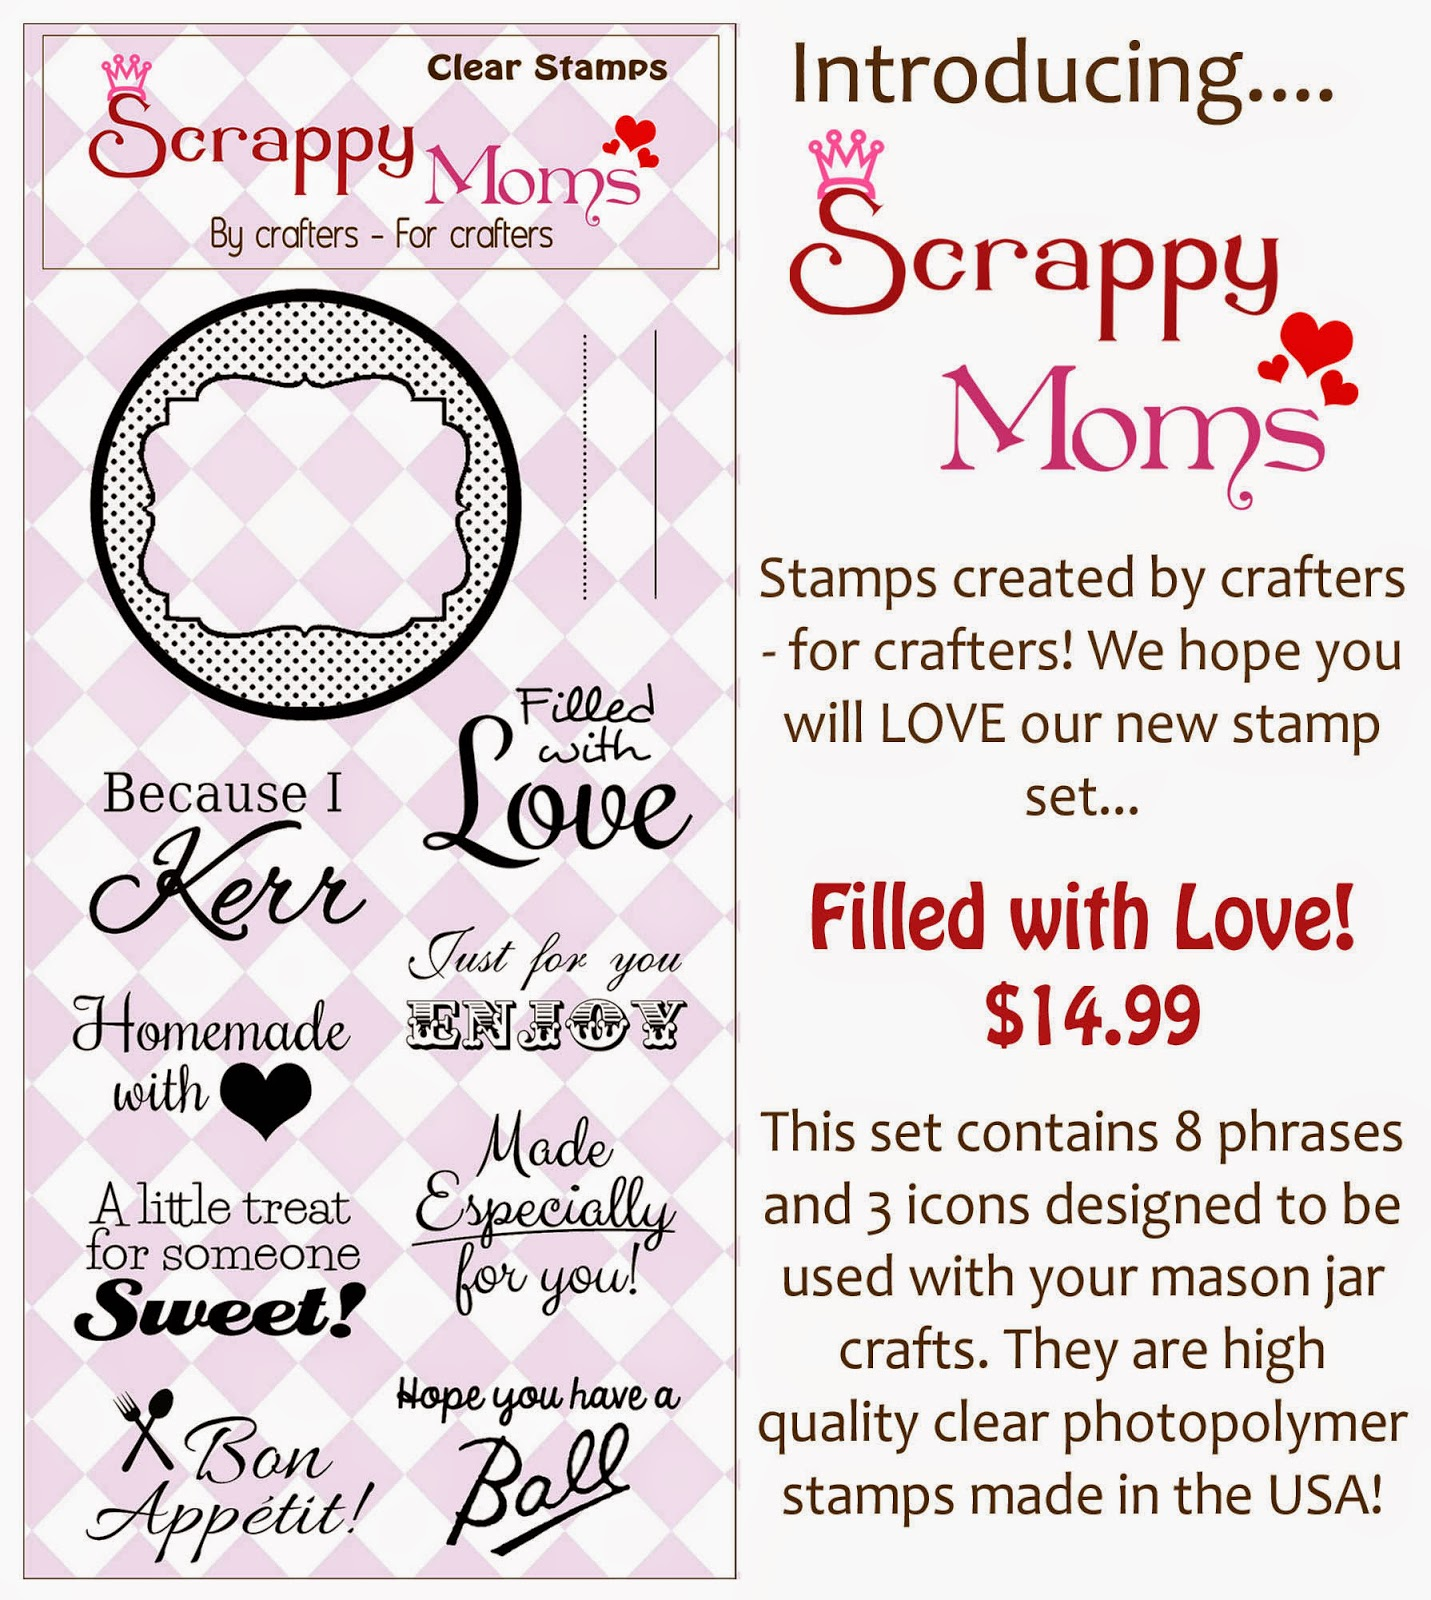 http://scrappymoms-stamps-store.blogspot.co.uk/